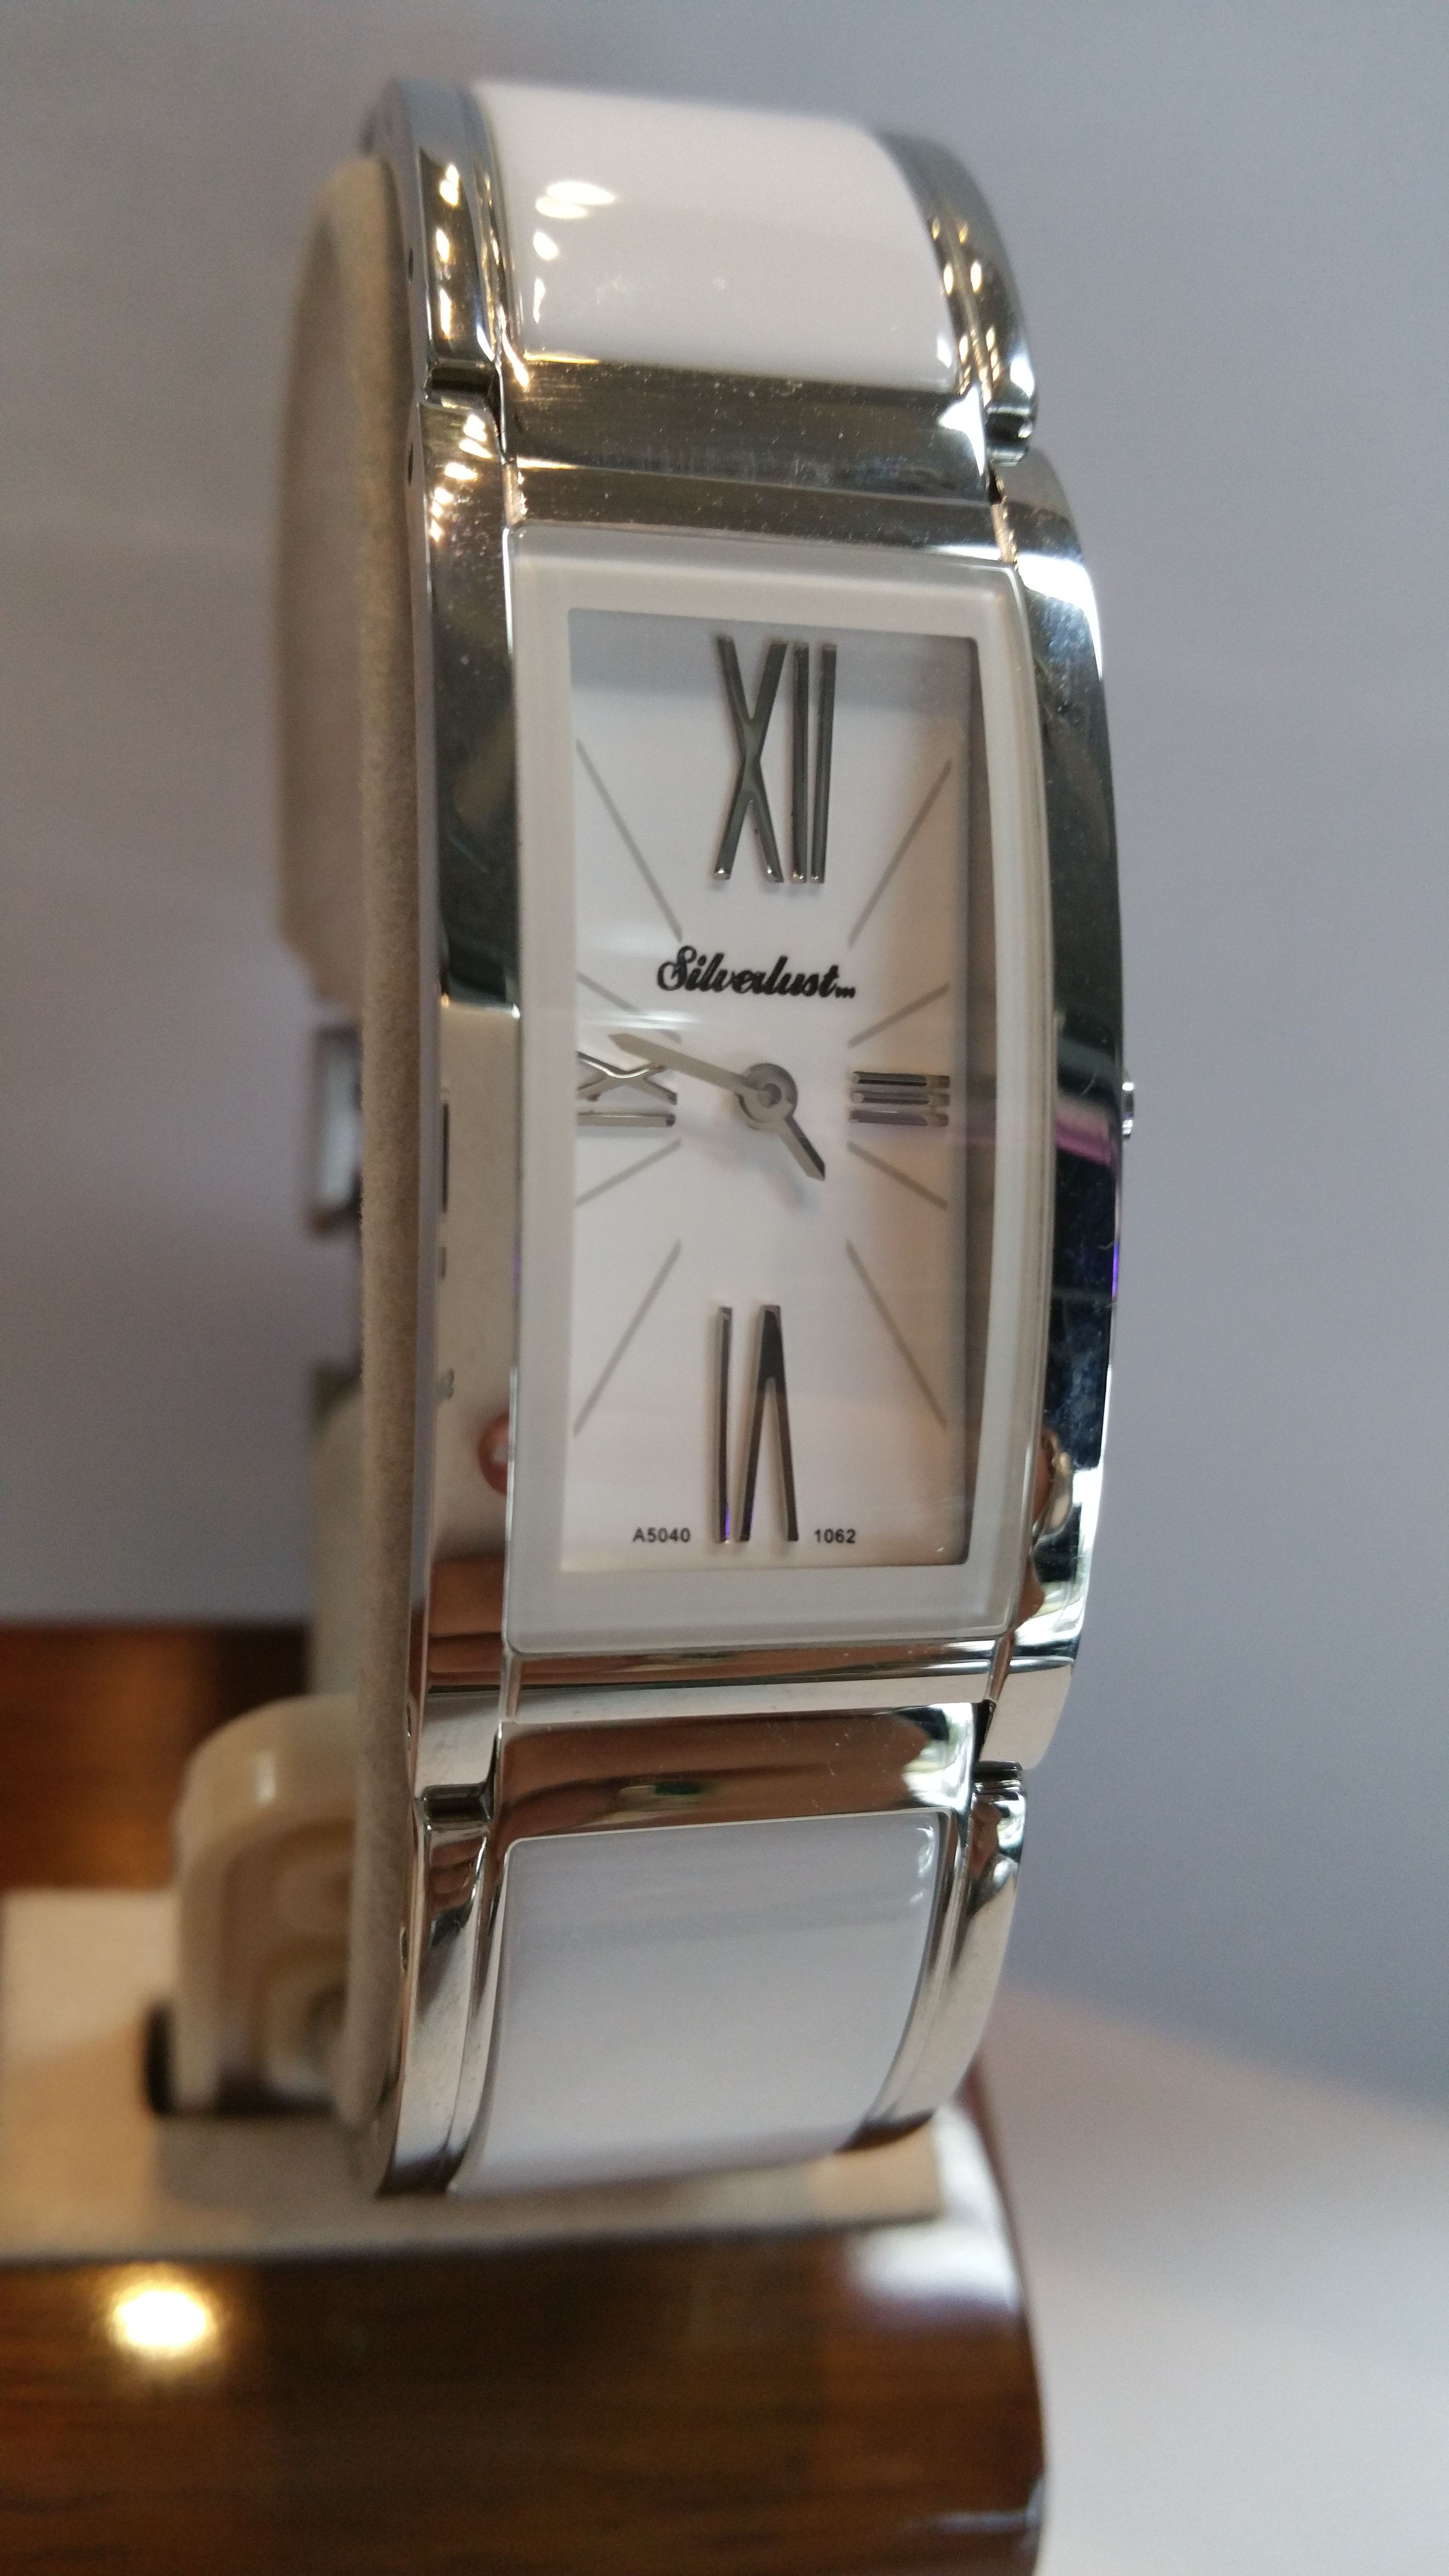 Water Resistant To 3atm White Ceramic And Steel White